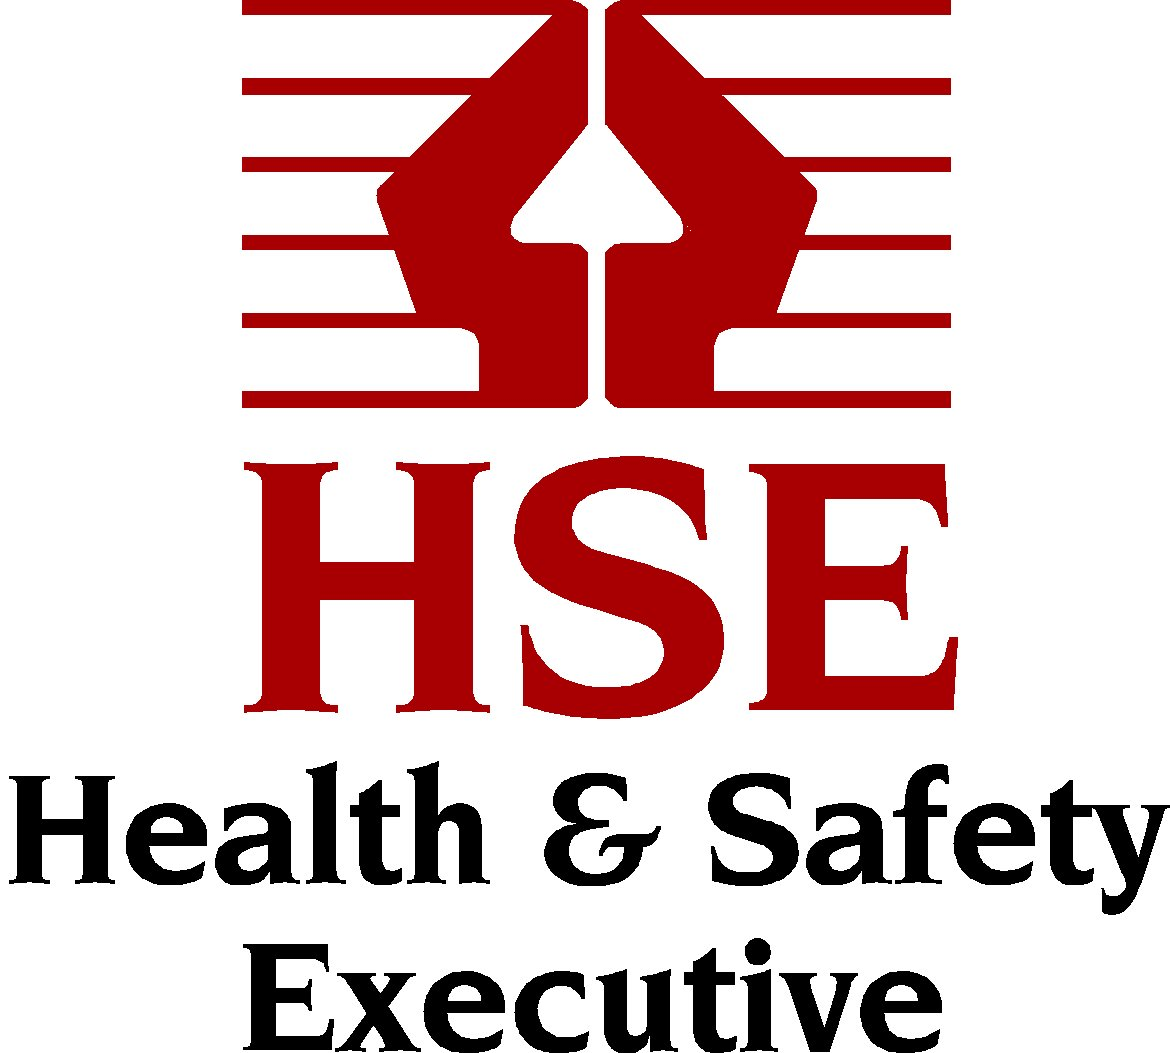 HSE annual figures for work-related fatal injuries for 2018/19